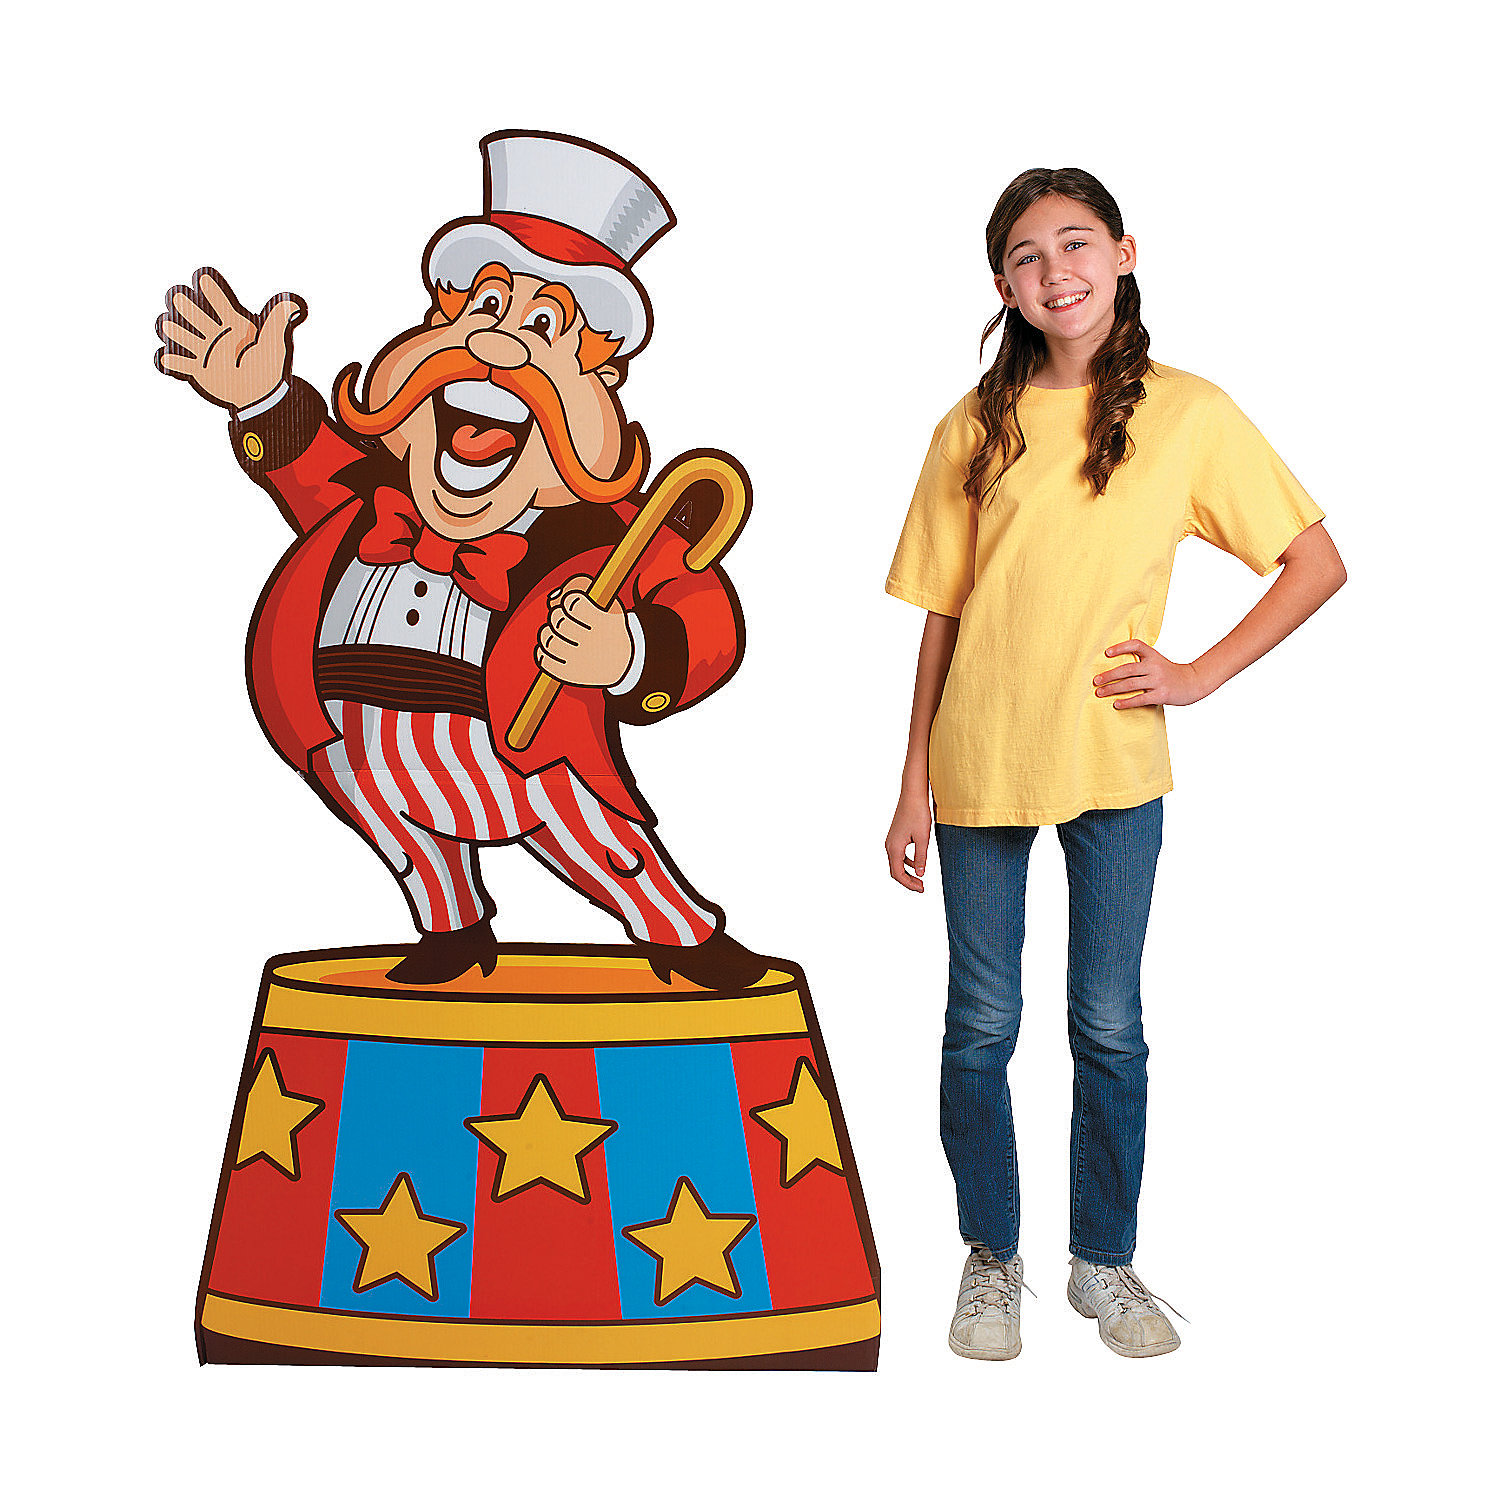 Carnival clipart circus ringmaster RING DECORATION PARTY RING UP